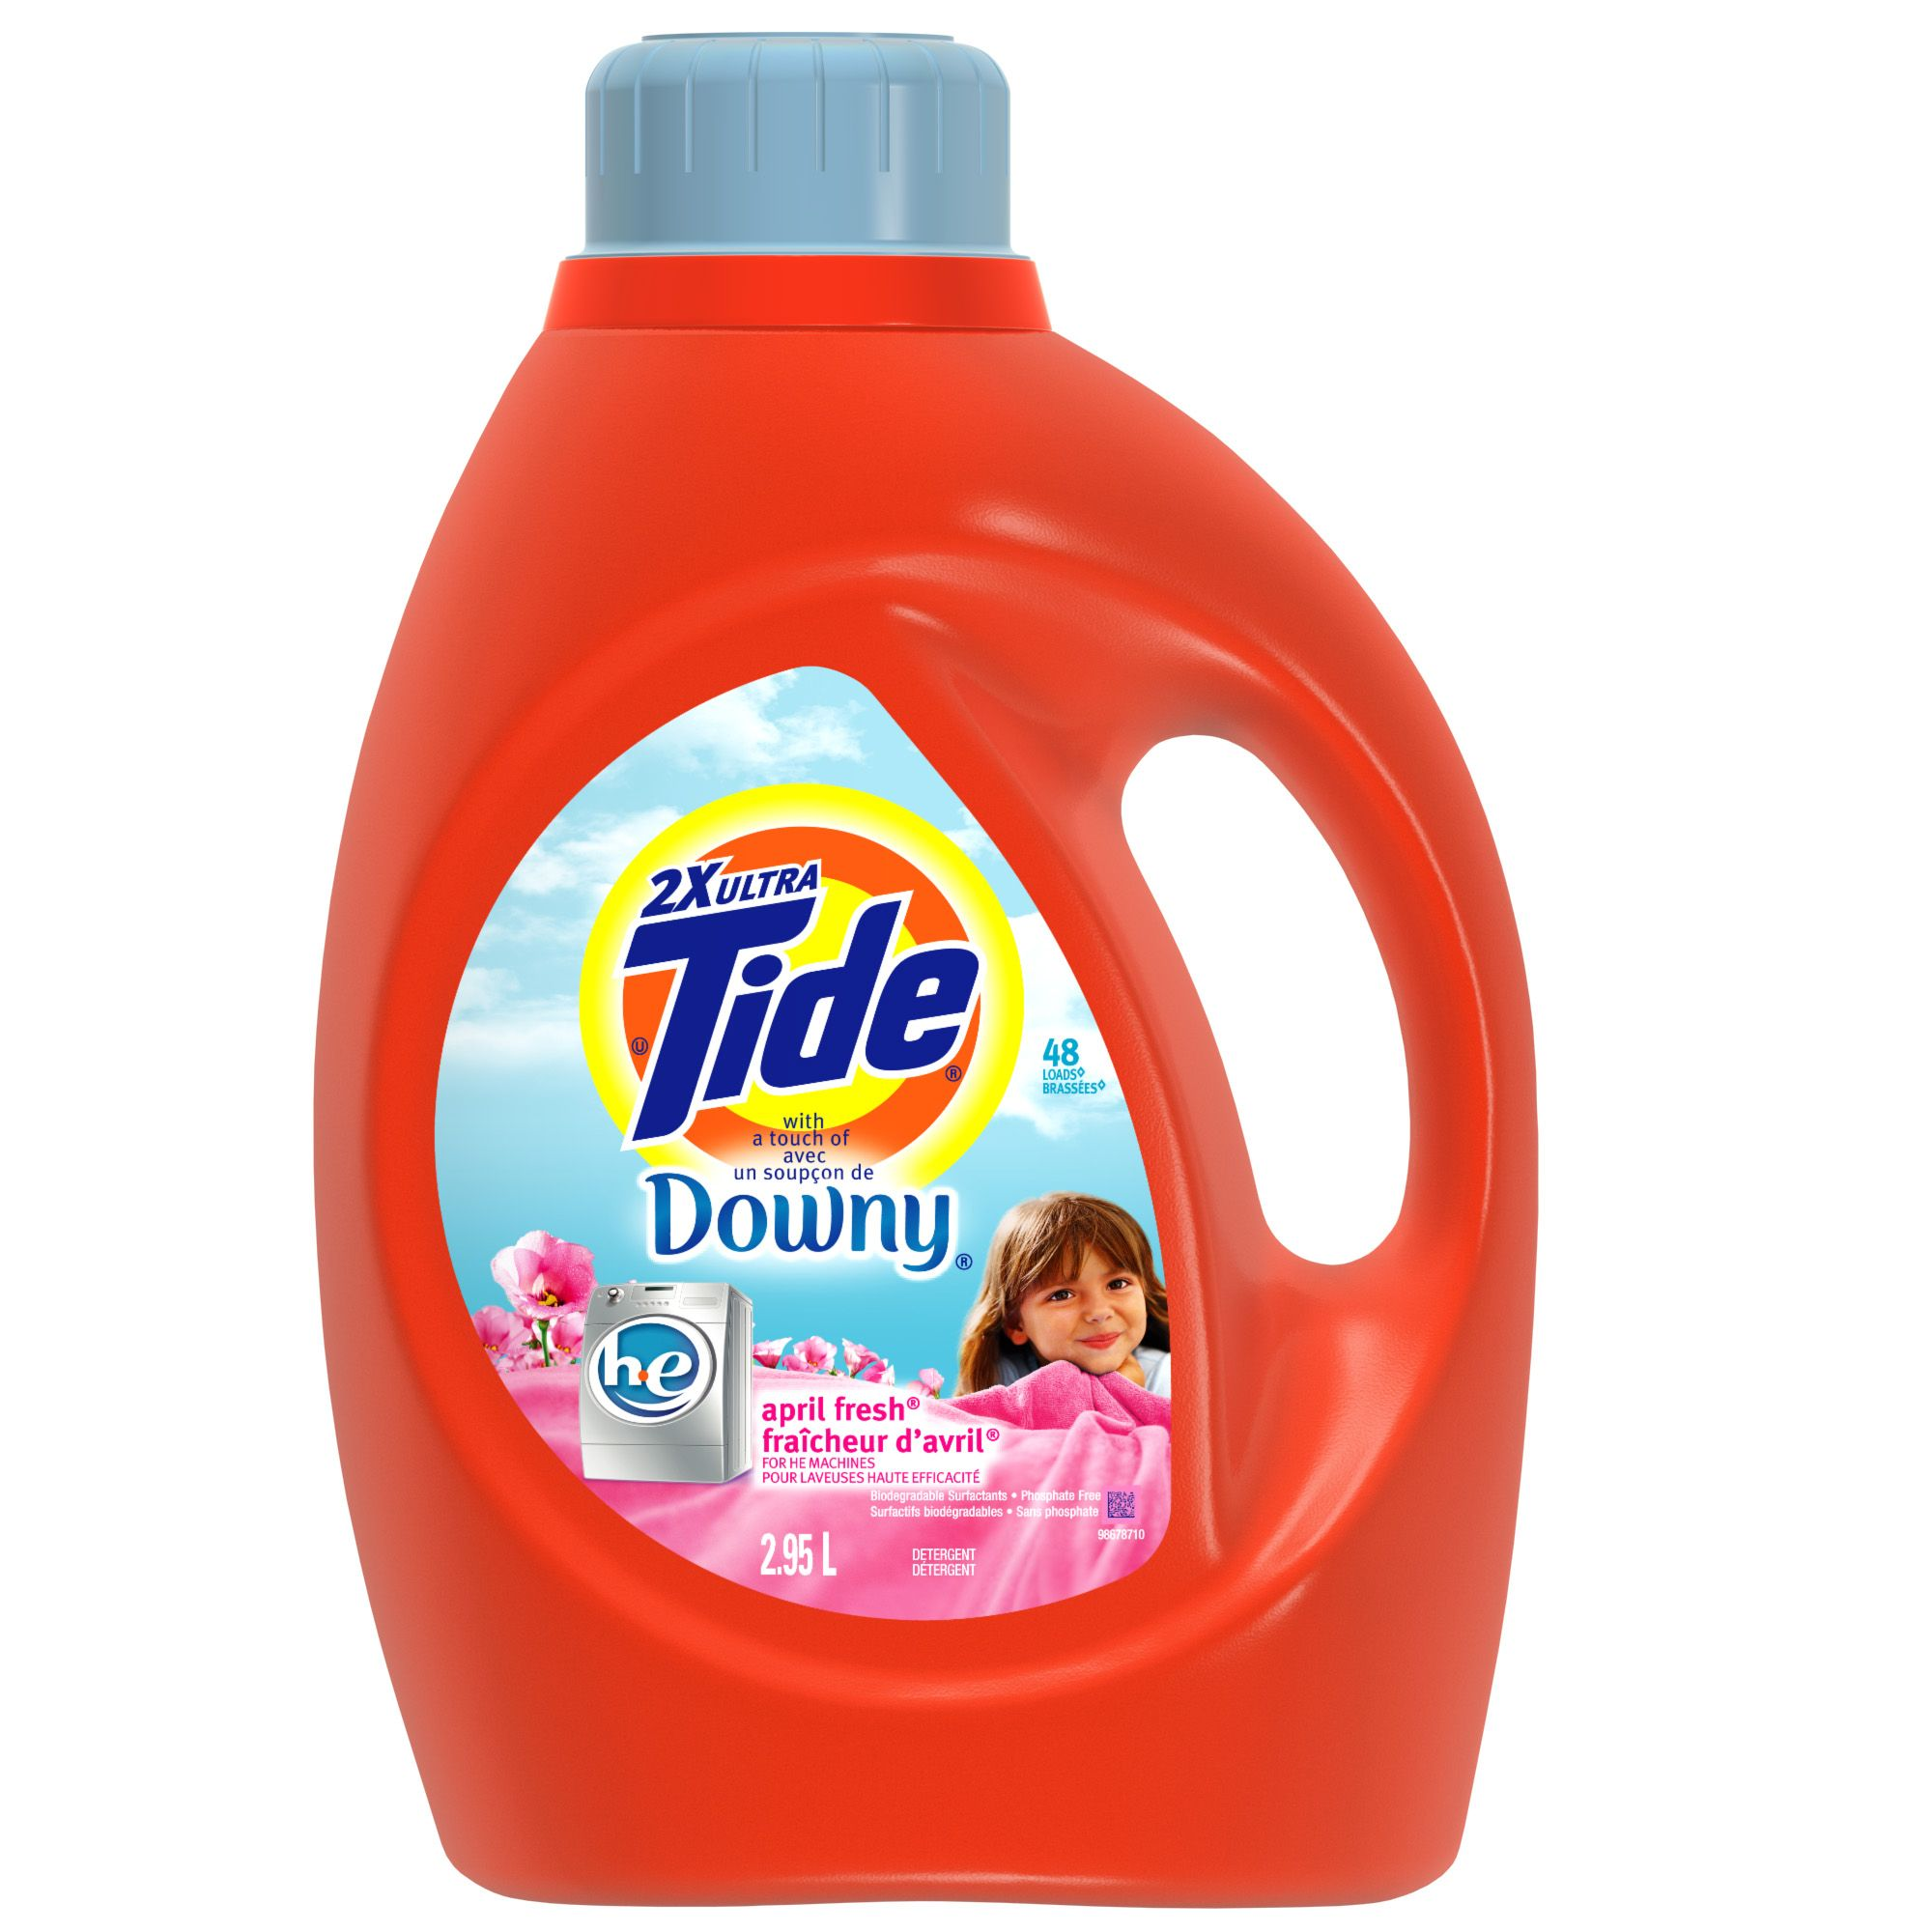 Tide Laundry Soap Tide Laundry Soap Tide Laundry Laundry Soap